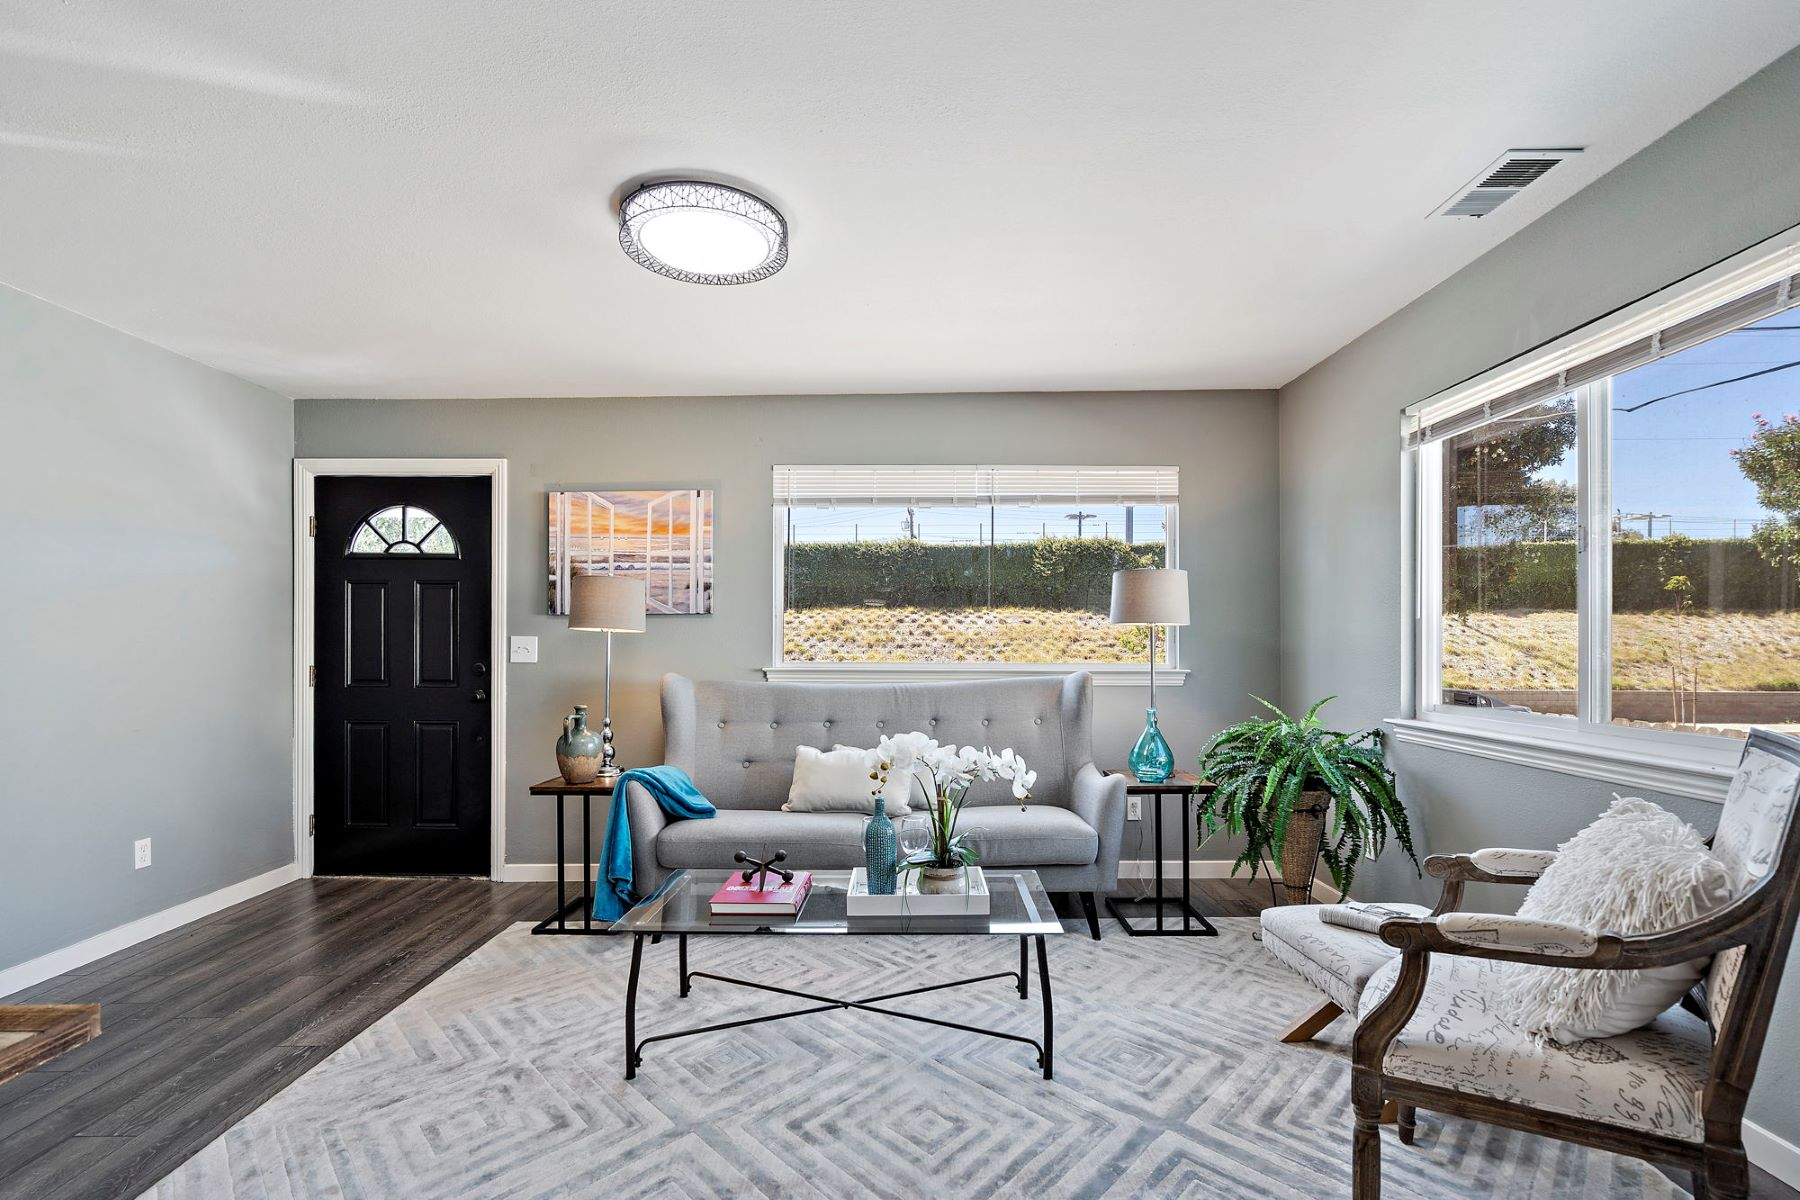 Single Family Homes for Sale at Tastefully Updated Ranch Style Home 564 1st Avenue San Bruno, California 94066 United States